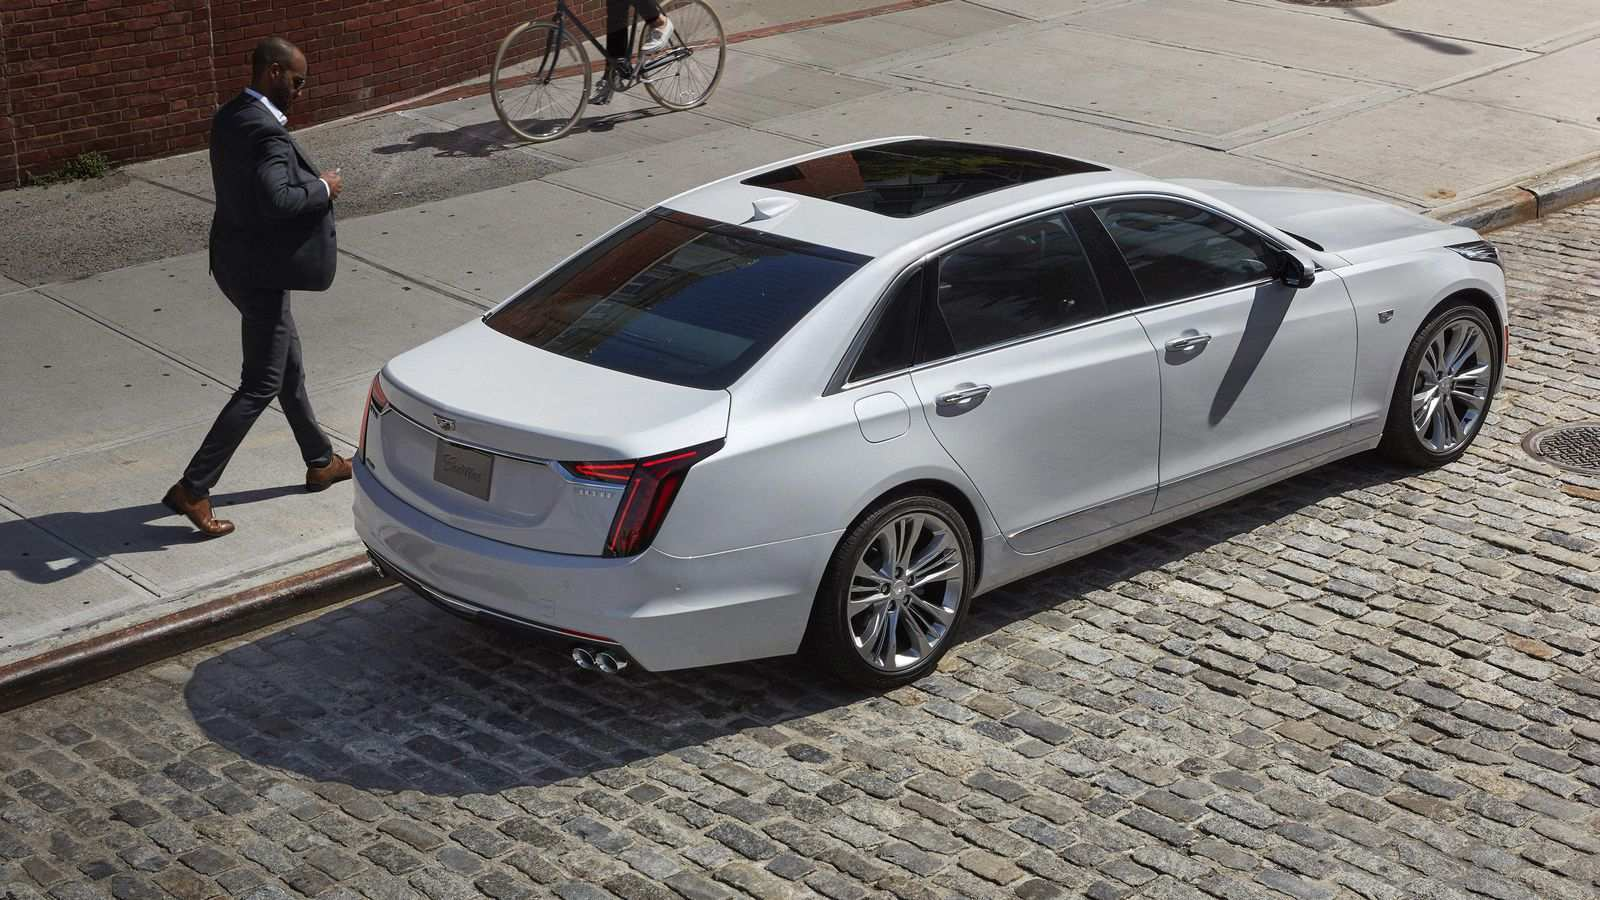 40 New 2020 Cadillac CT6 Style